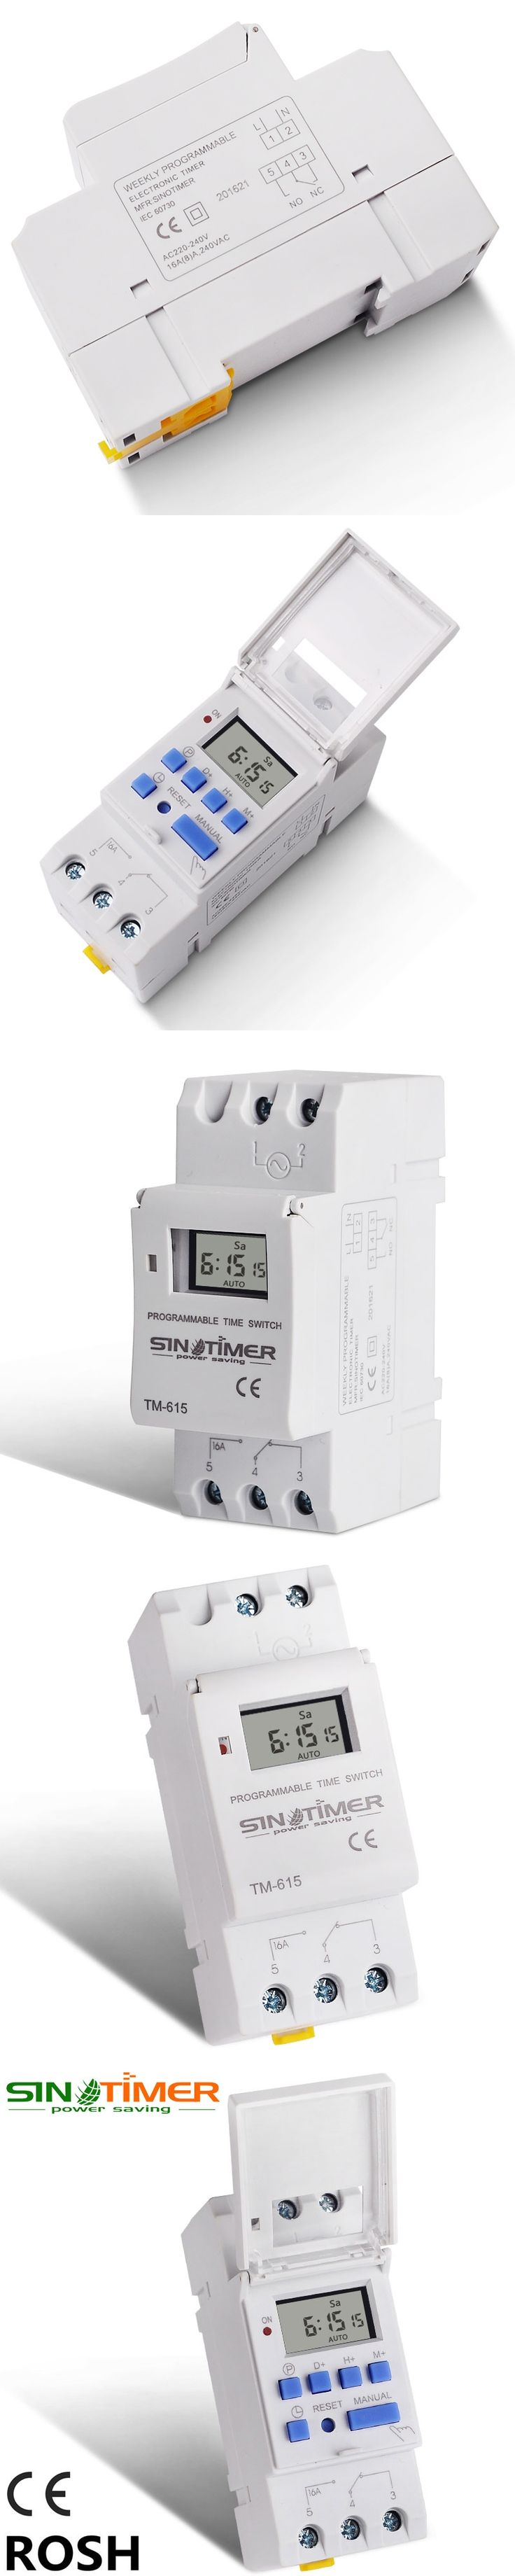 SINOTIMER Brand Microcomputer Electronic Weekly Programmable Digital TIMER SWITCH Time Relay Control 220V AC 16A Din Rail Mount